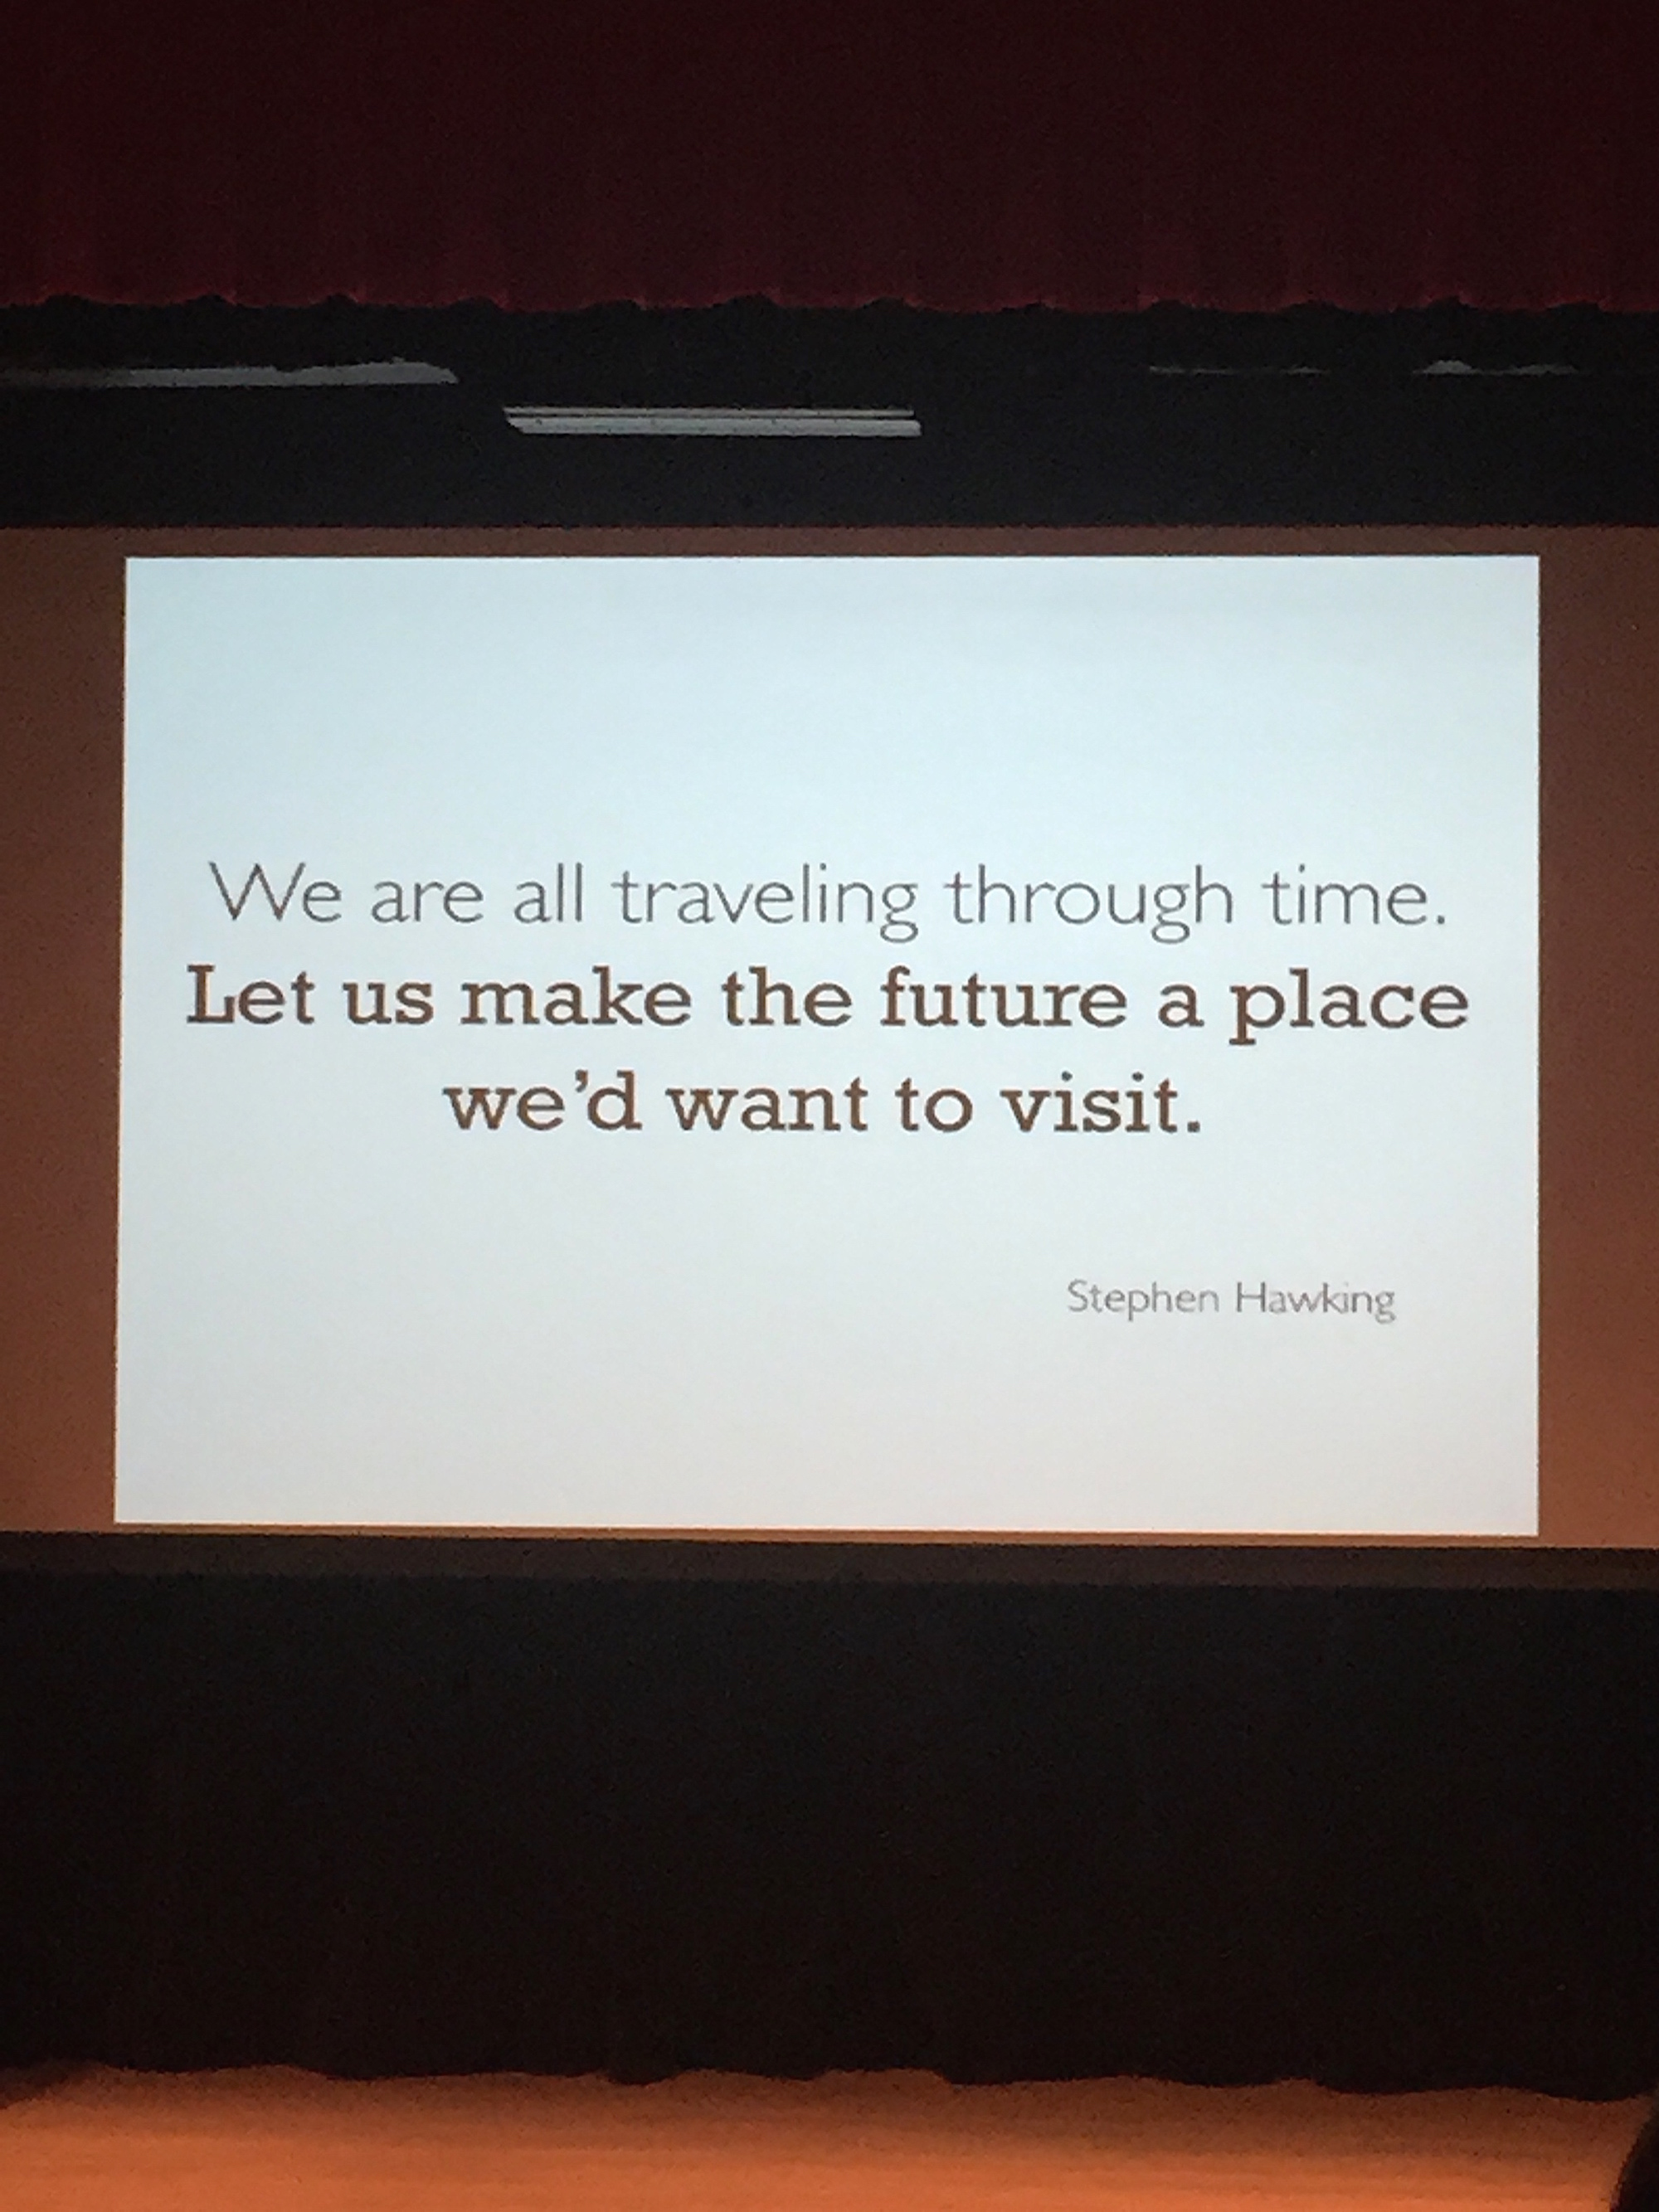 """We are all traveling through time. Let us make the future a place we'd want to visit."" - Stephen Hawking"